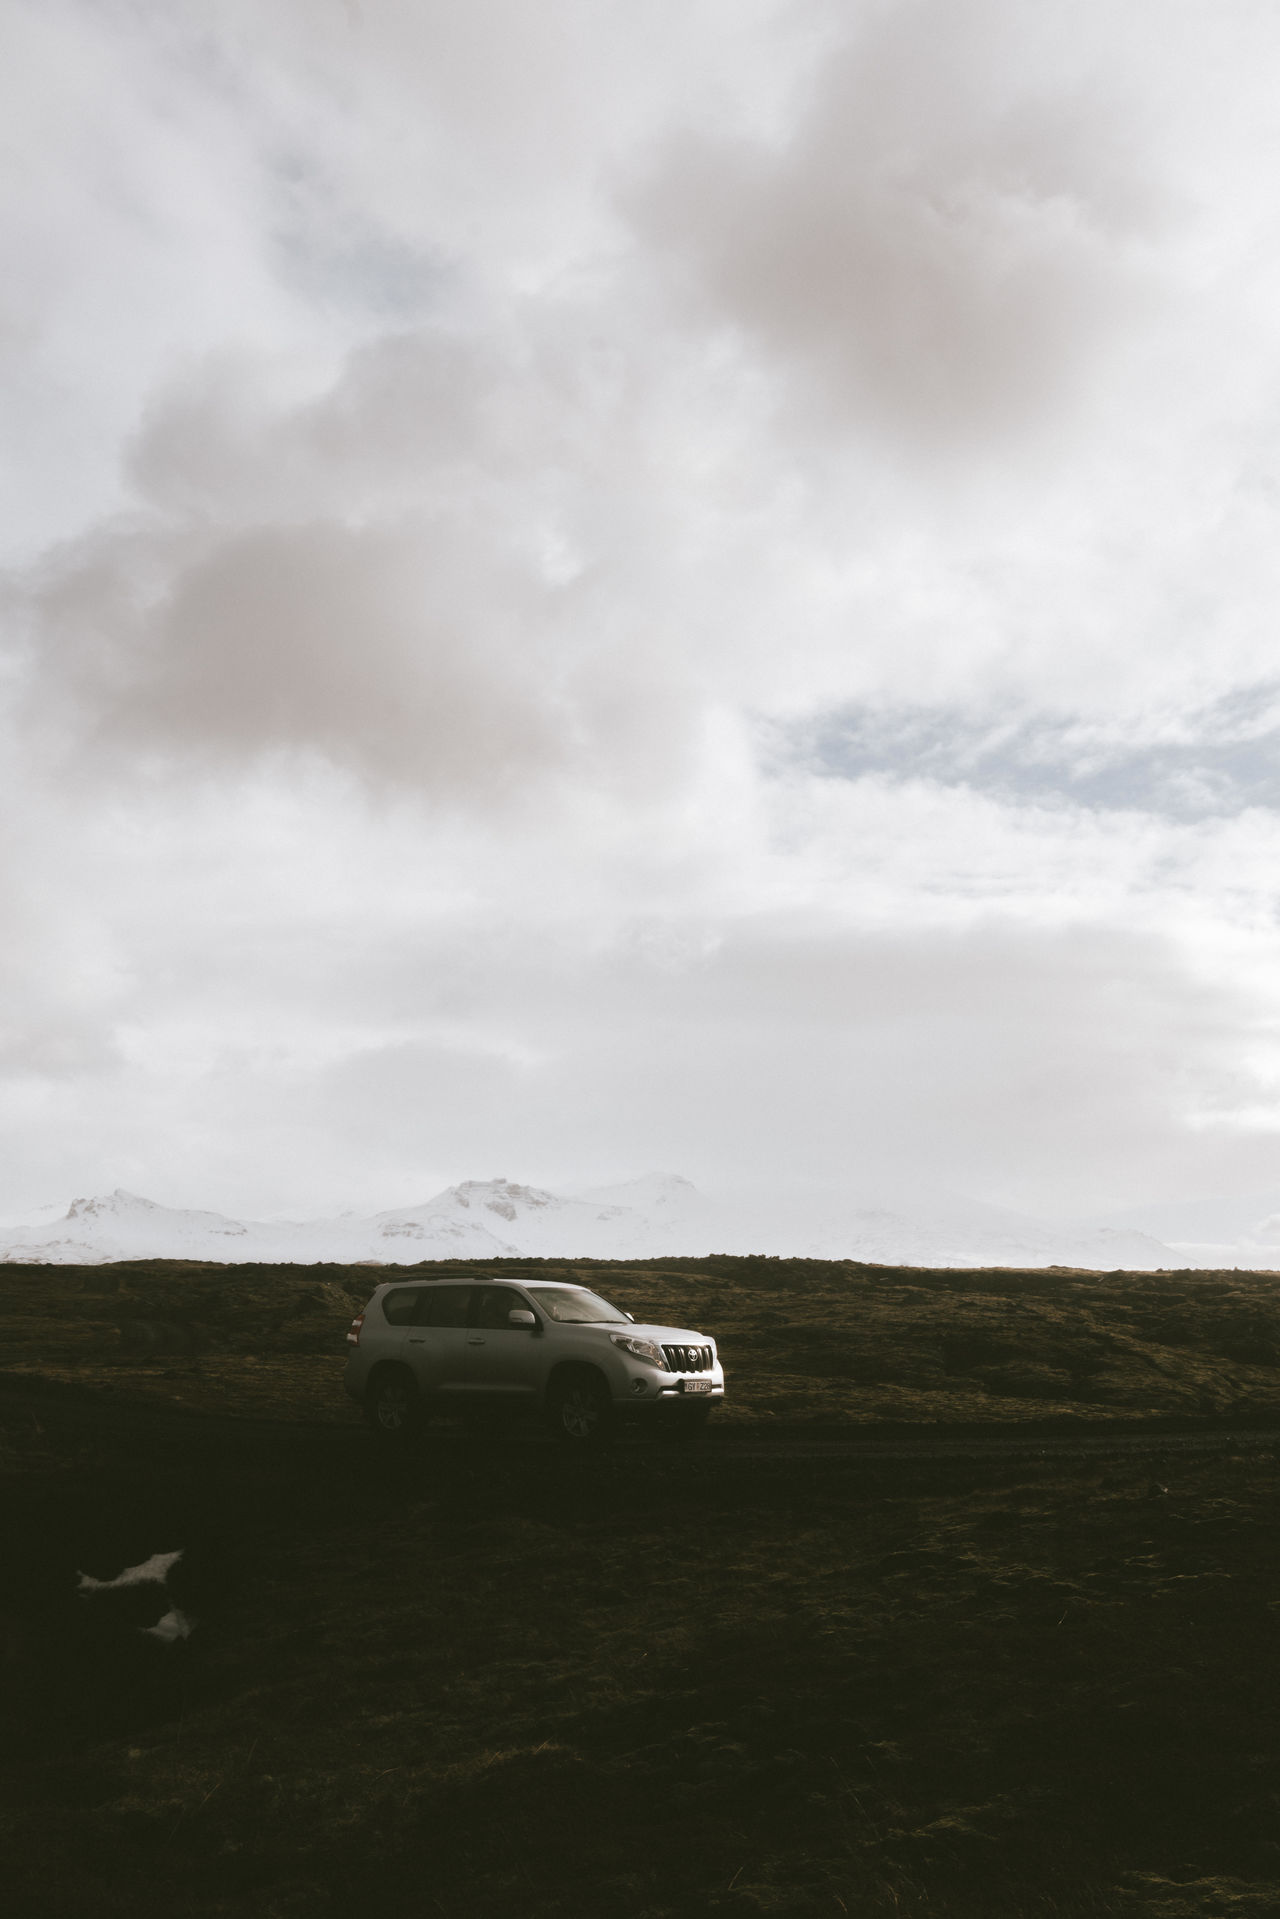 Car in the icelandic landscape 4x4 Airplane Beauty In Nature Car Cloud - Sky Day Field Grass Land Vehicle Landscape Mode Of Transport Nature No People Outdoors Sky Transportation